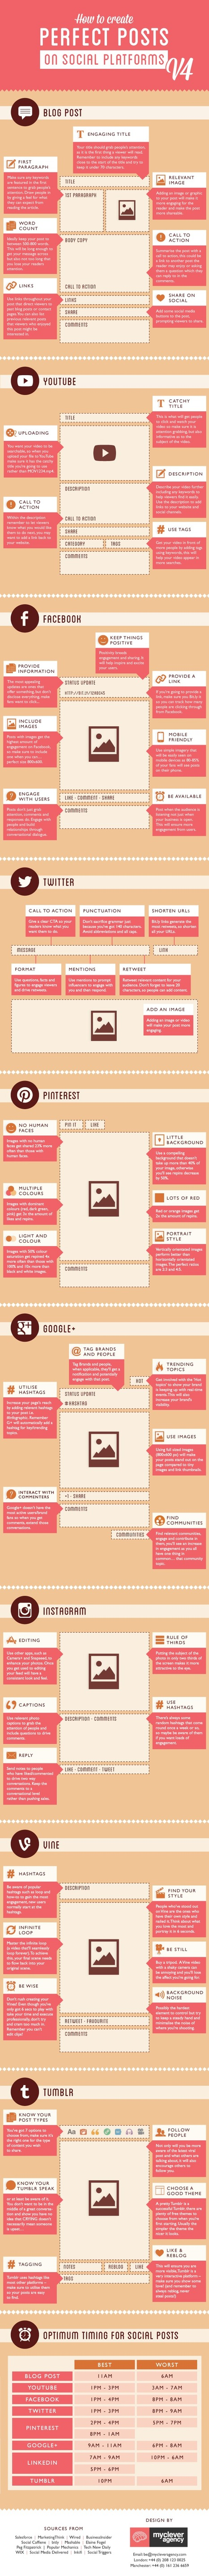 The Art of Creating Perfect Social Media Posts - infographic | Digital boards | Scoop.it